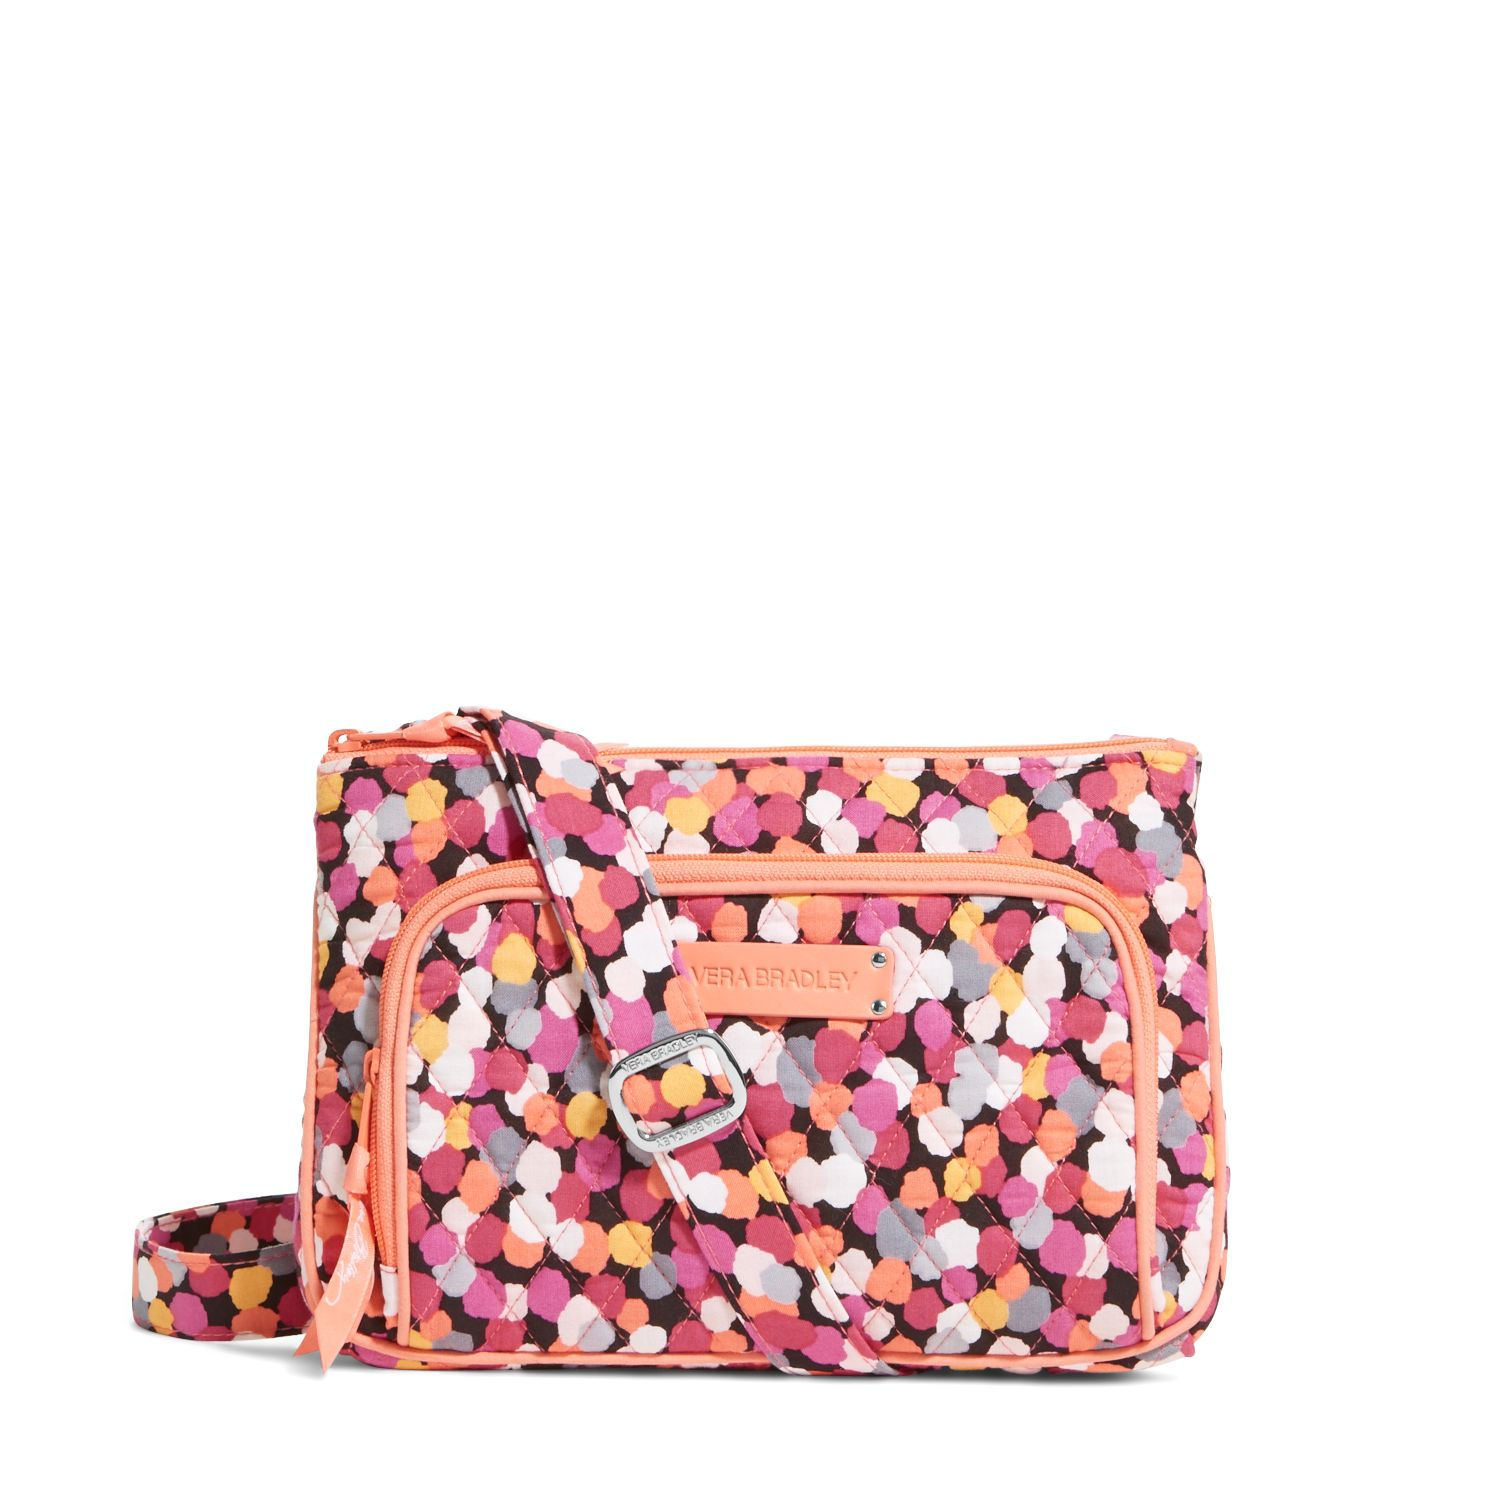 Vera Bradley Little Hipster Crossbody in Pixie Confetti